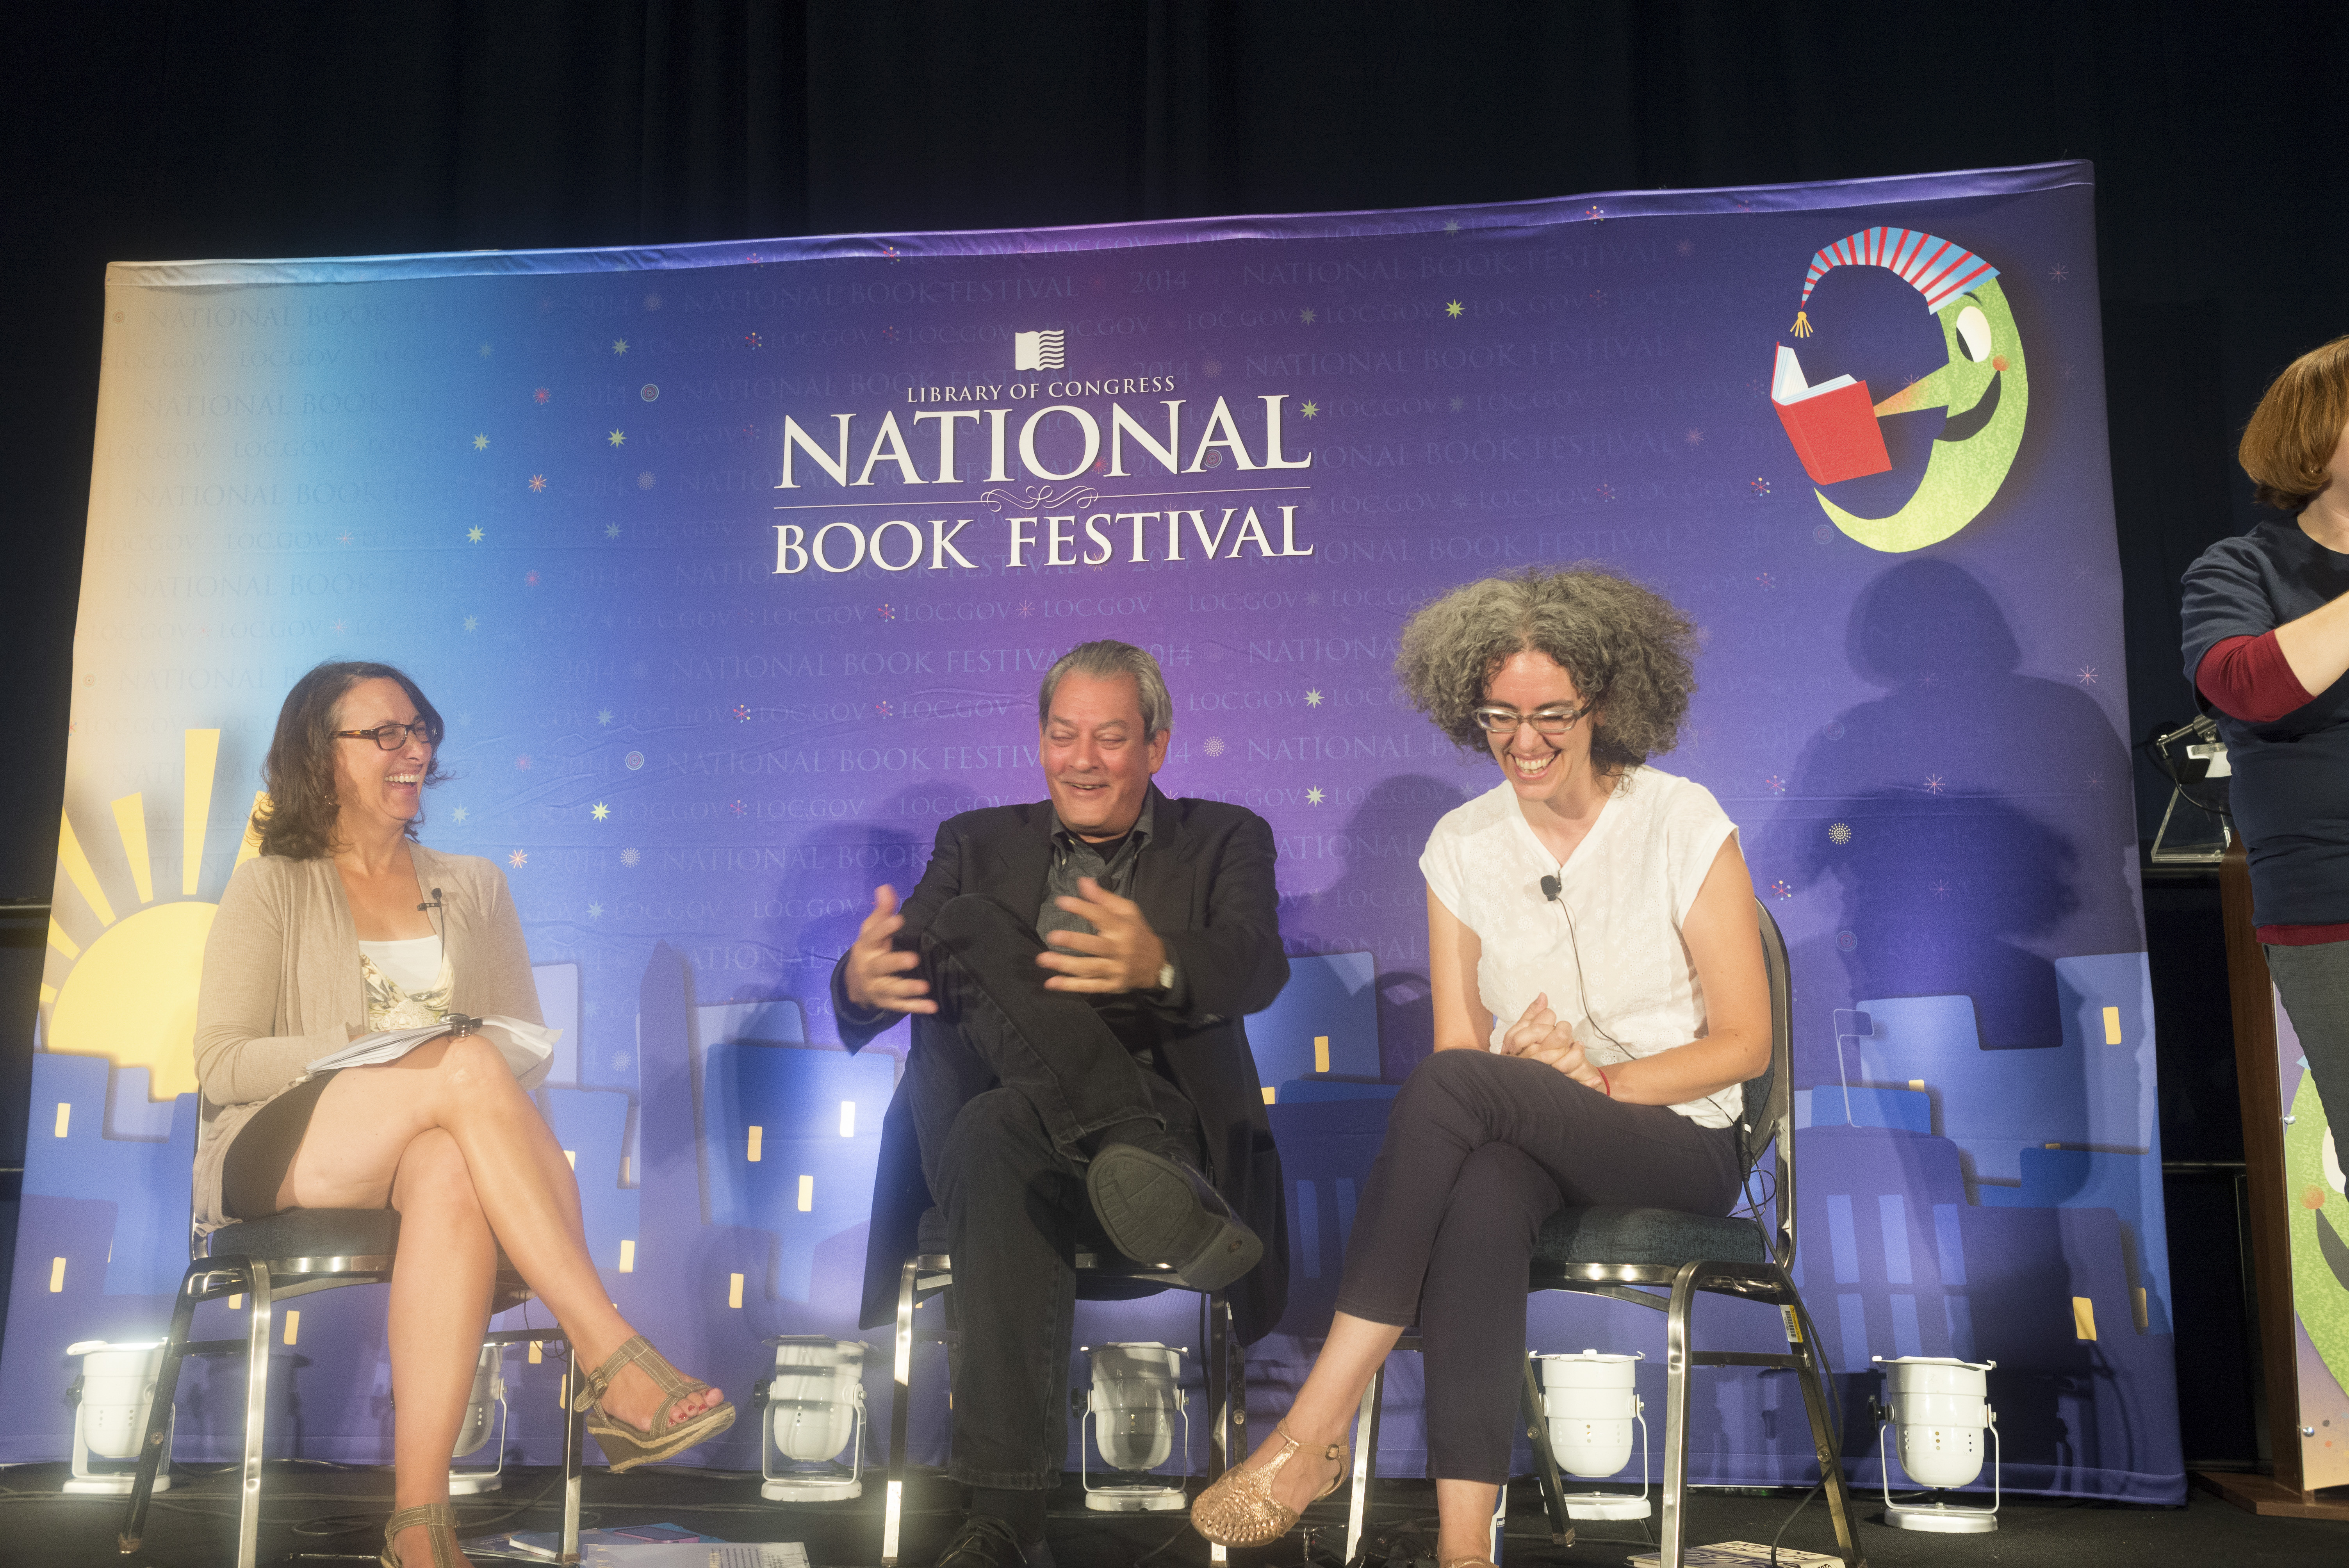 NEA Literature Director on stage smiling and laughing with NEA Creative Writing Fellow Paul Auster and NEA Literature Translation Fellow Natasha Wimmer.